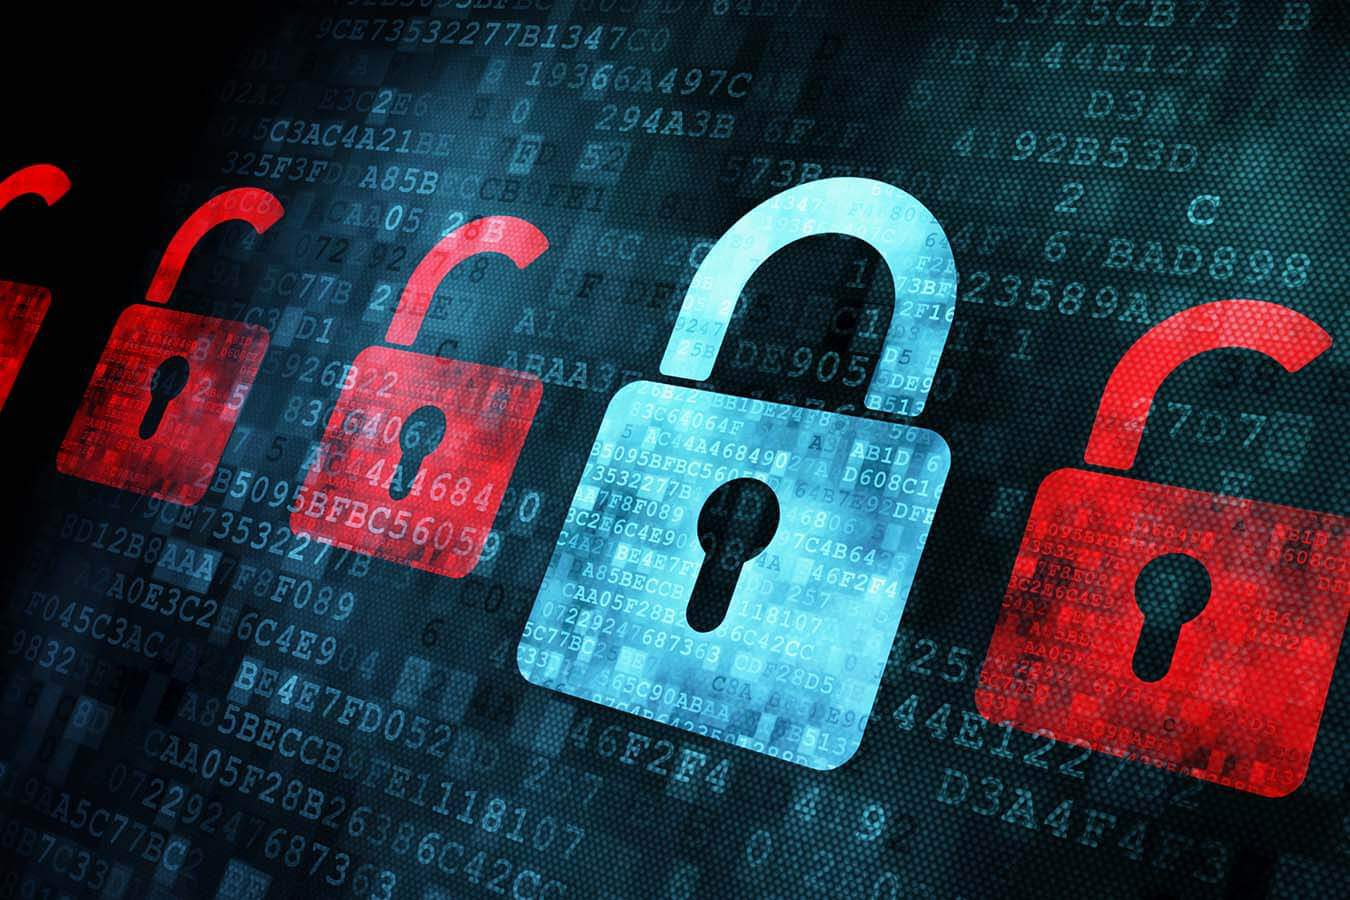 Ransomware – Did you update your incident response plan?